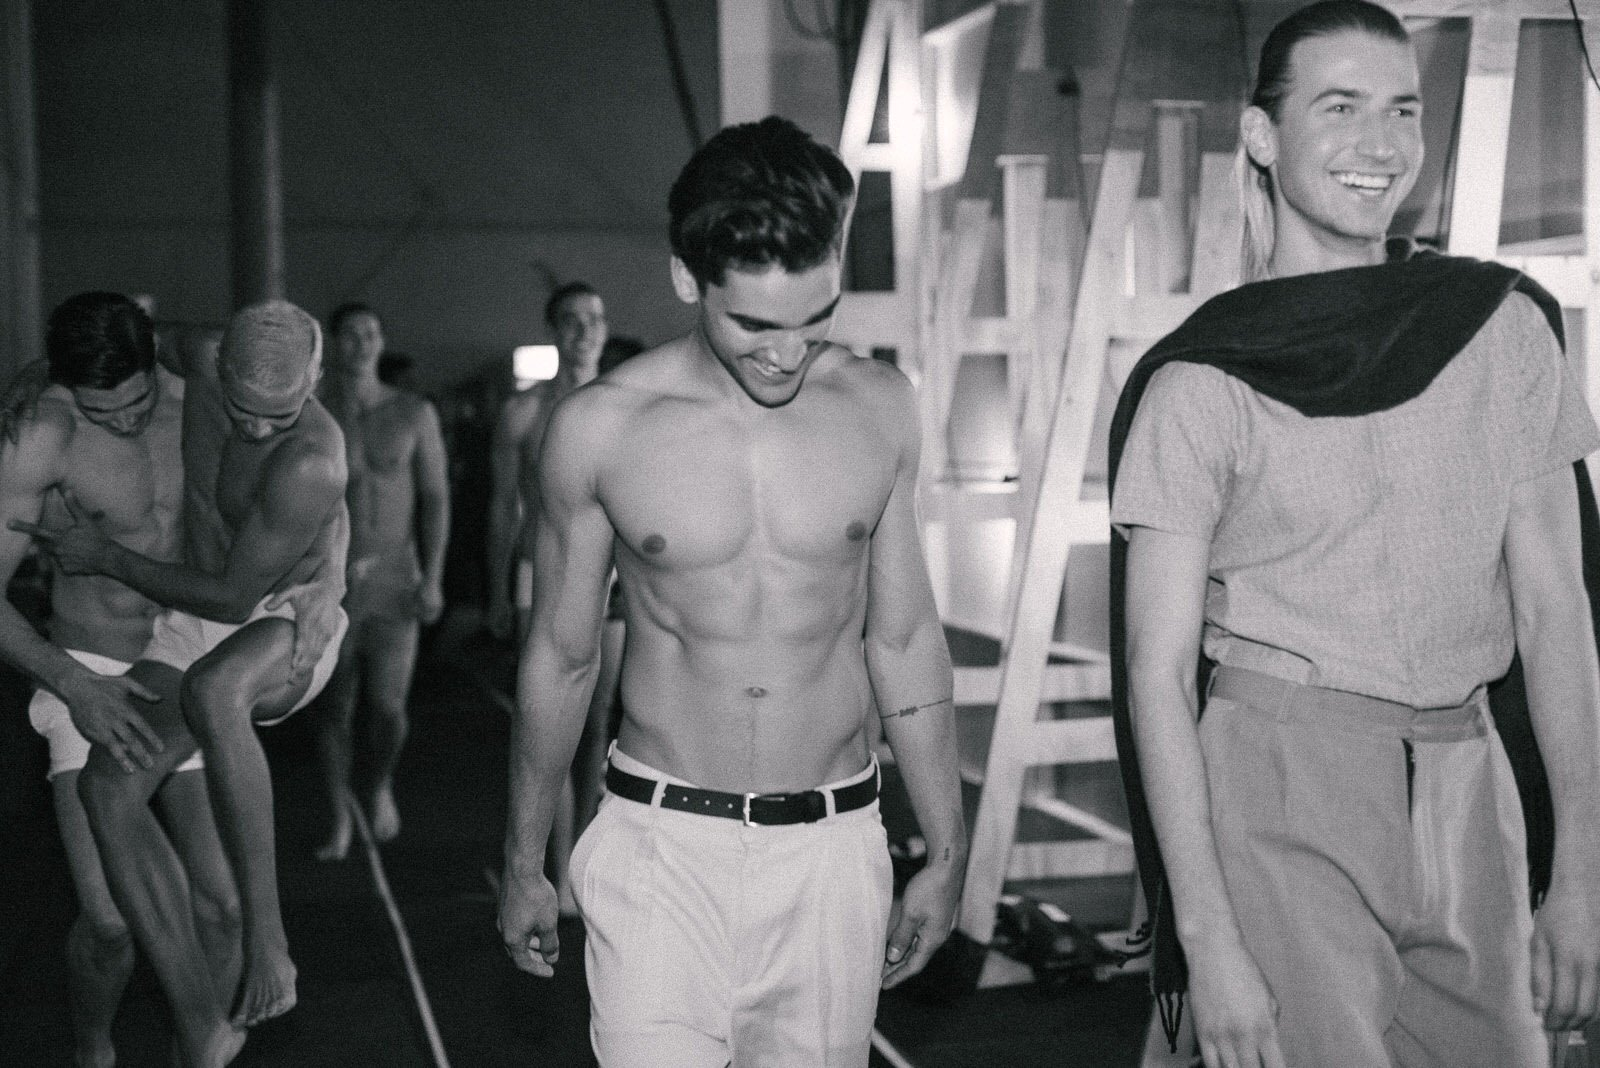 Back stage for the Justin Cassin runway at MBFWA